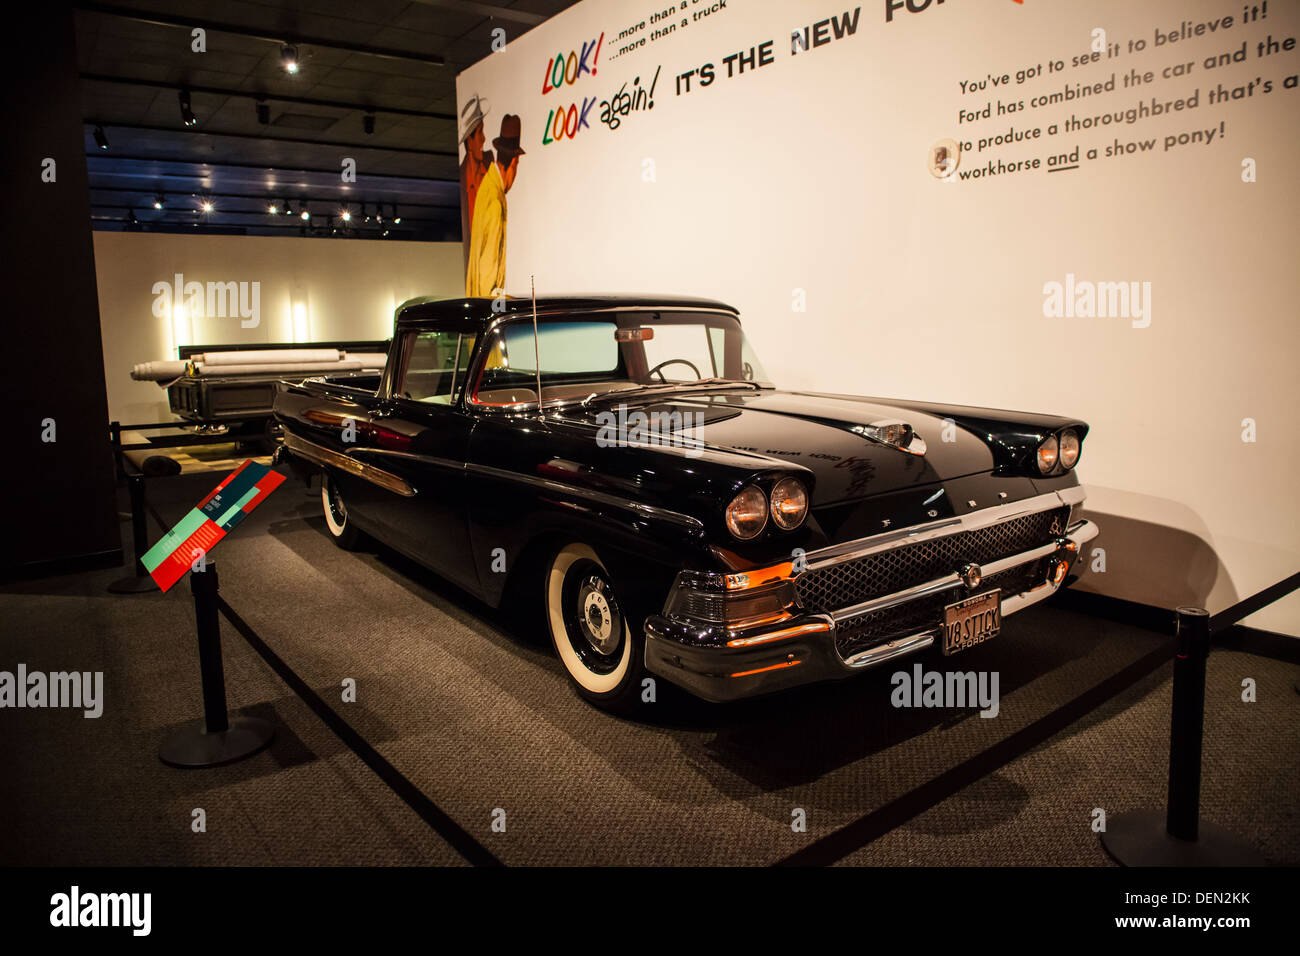 hight resolution of a 1958 ford ranchero pickup truck based on an automobile chassis stock image